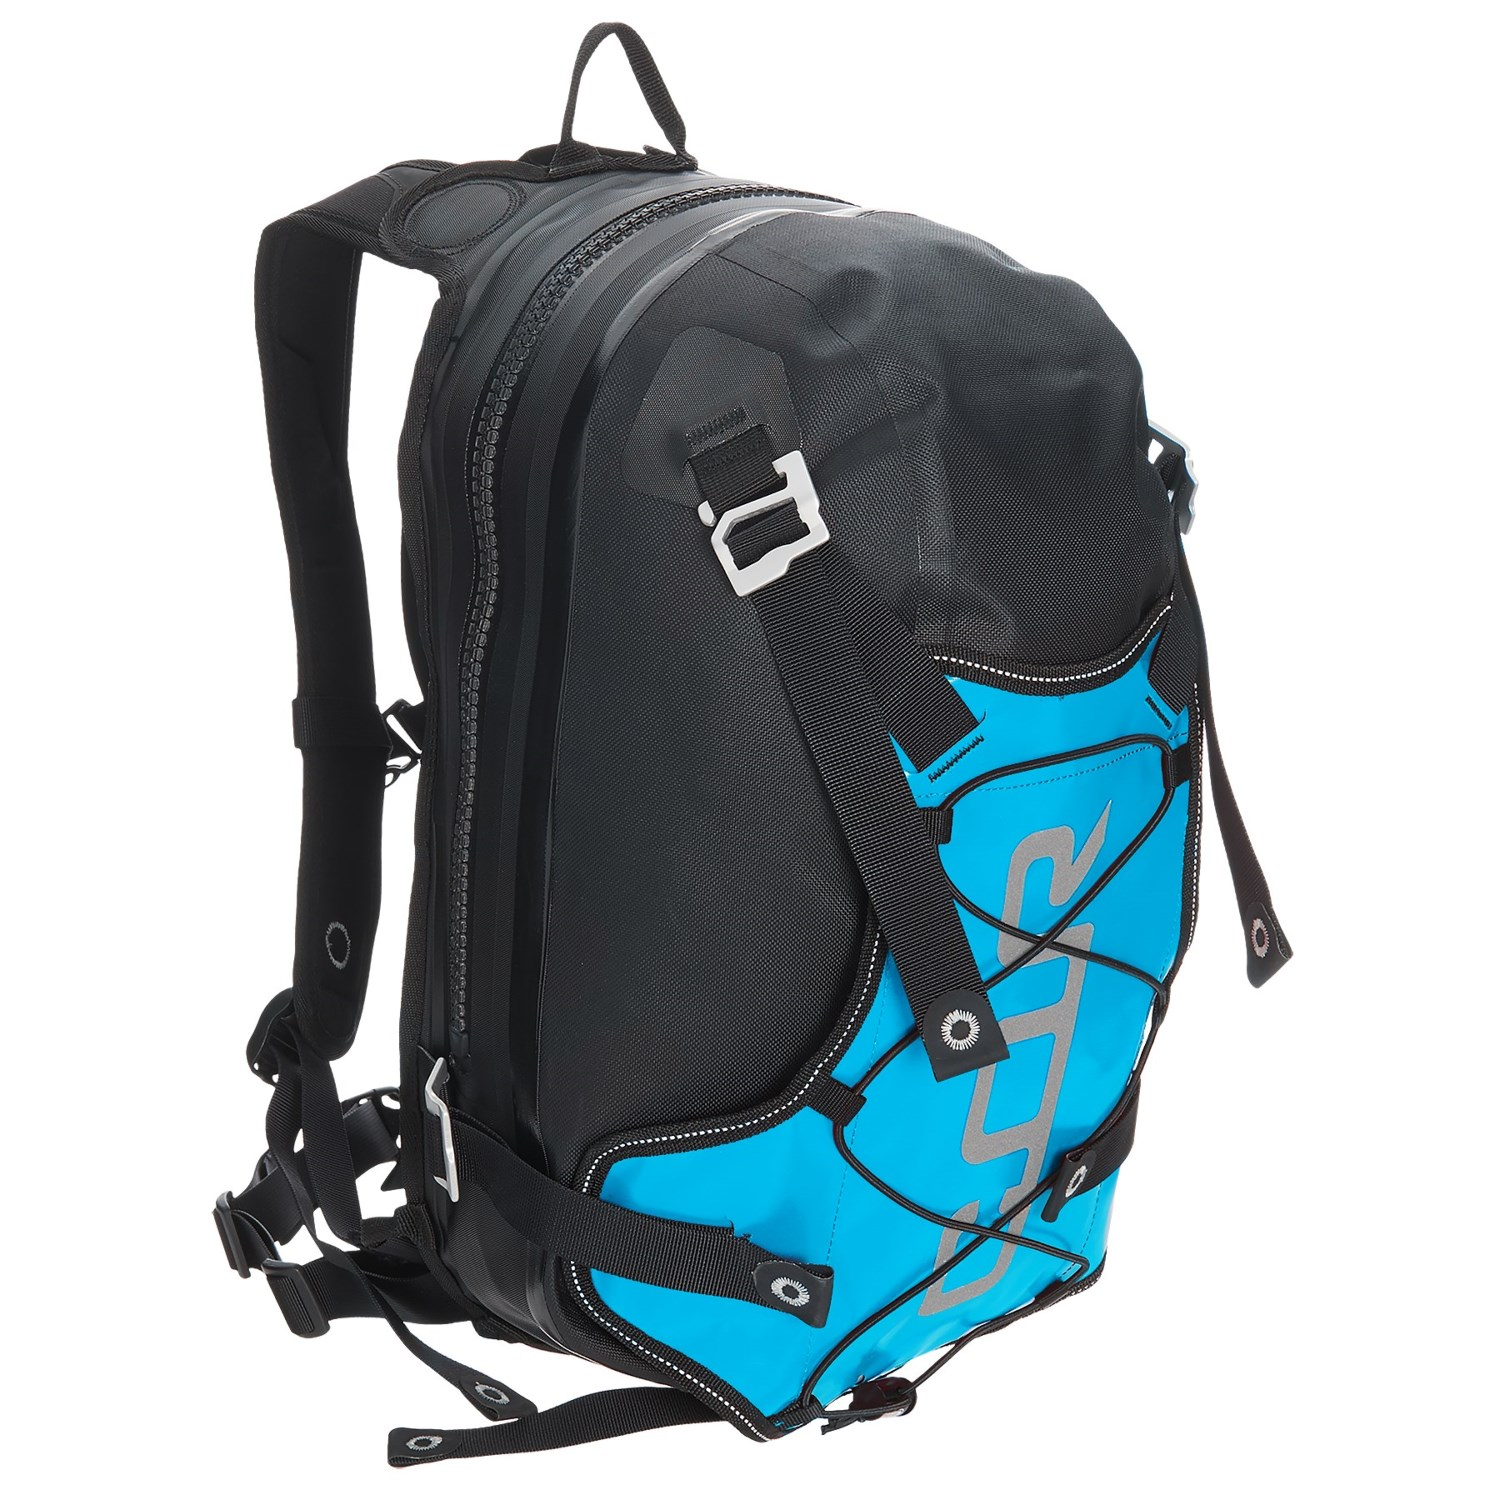 70a68ccace67 Oceanic Cargo Mesh Backpack- Fenix Toulouse Handball